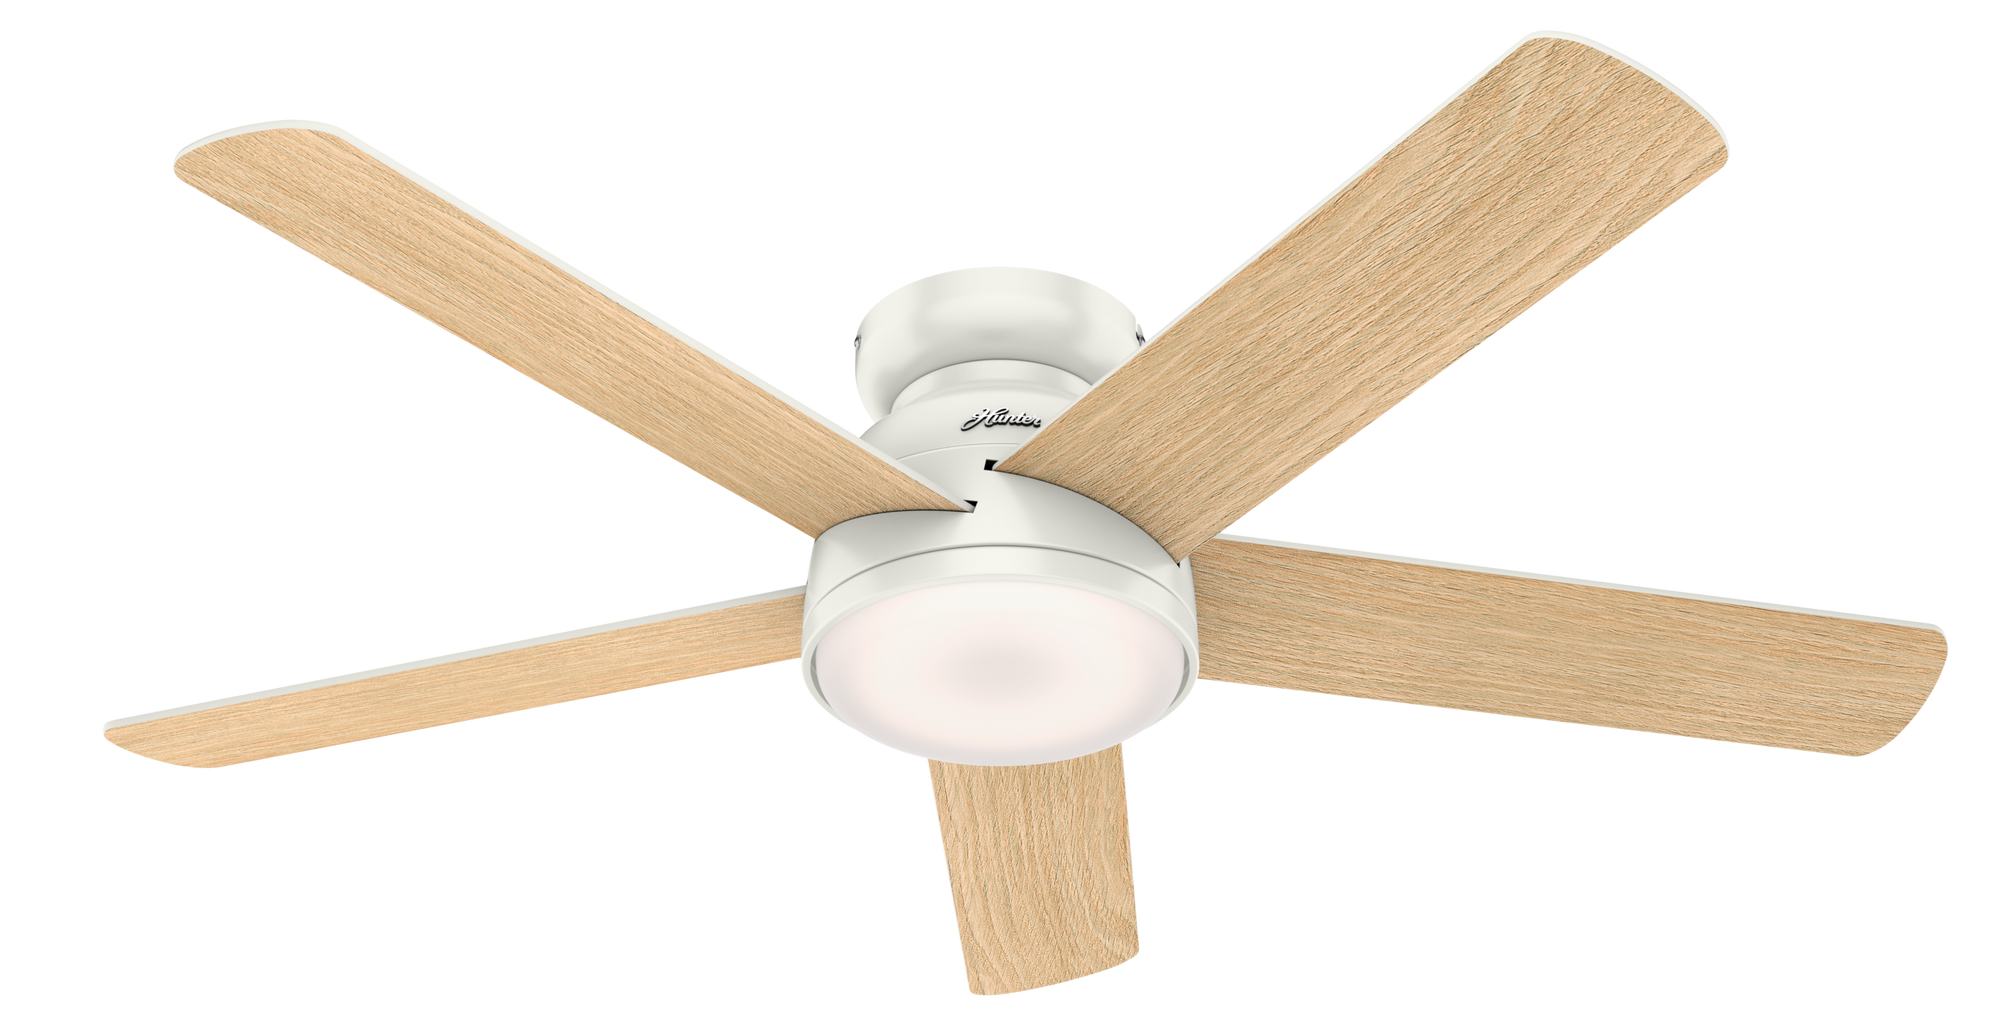 Hunter Indoor Low Profile Romulus Ceiling Fan with LED LightJD inch, White, 59481